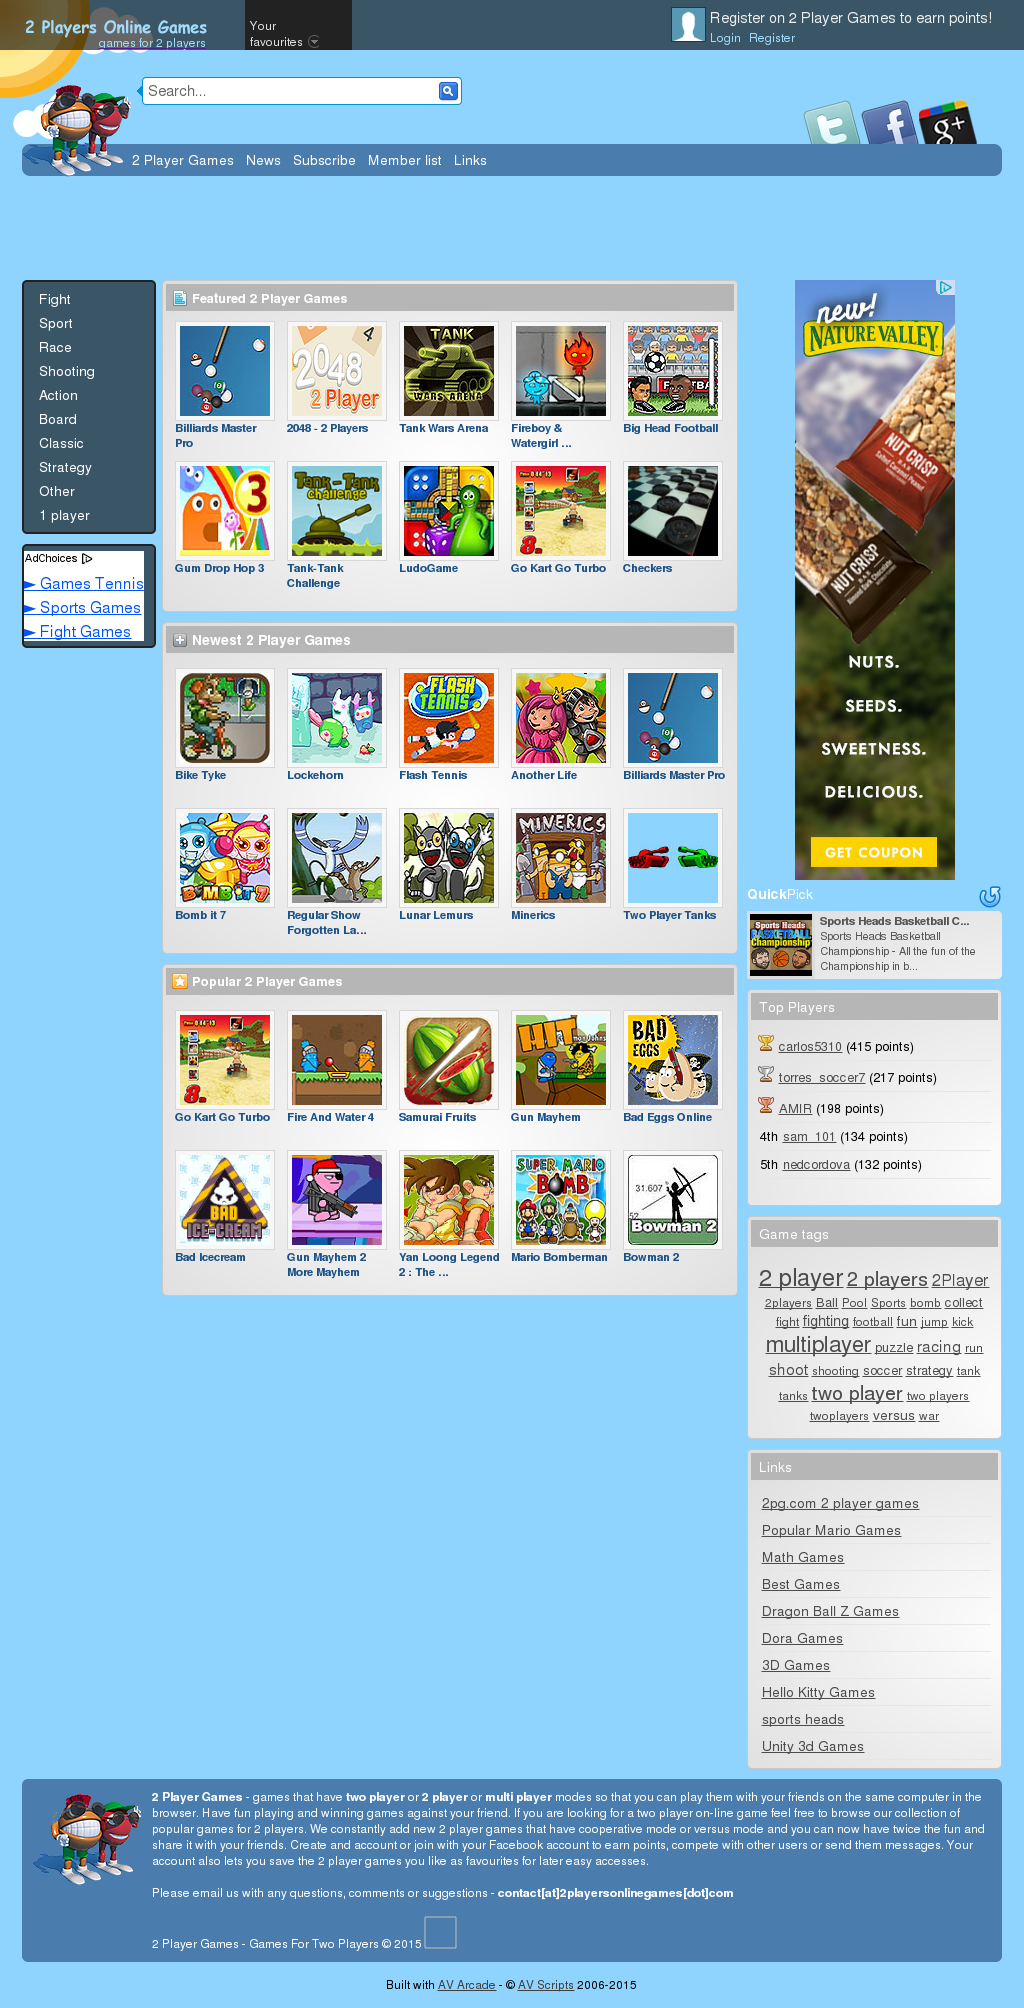 2 Players Online Games Competitors, Revenue and Employees